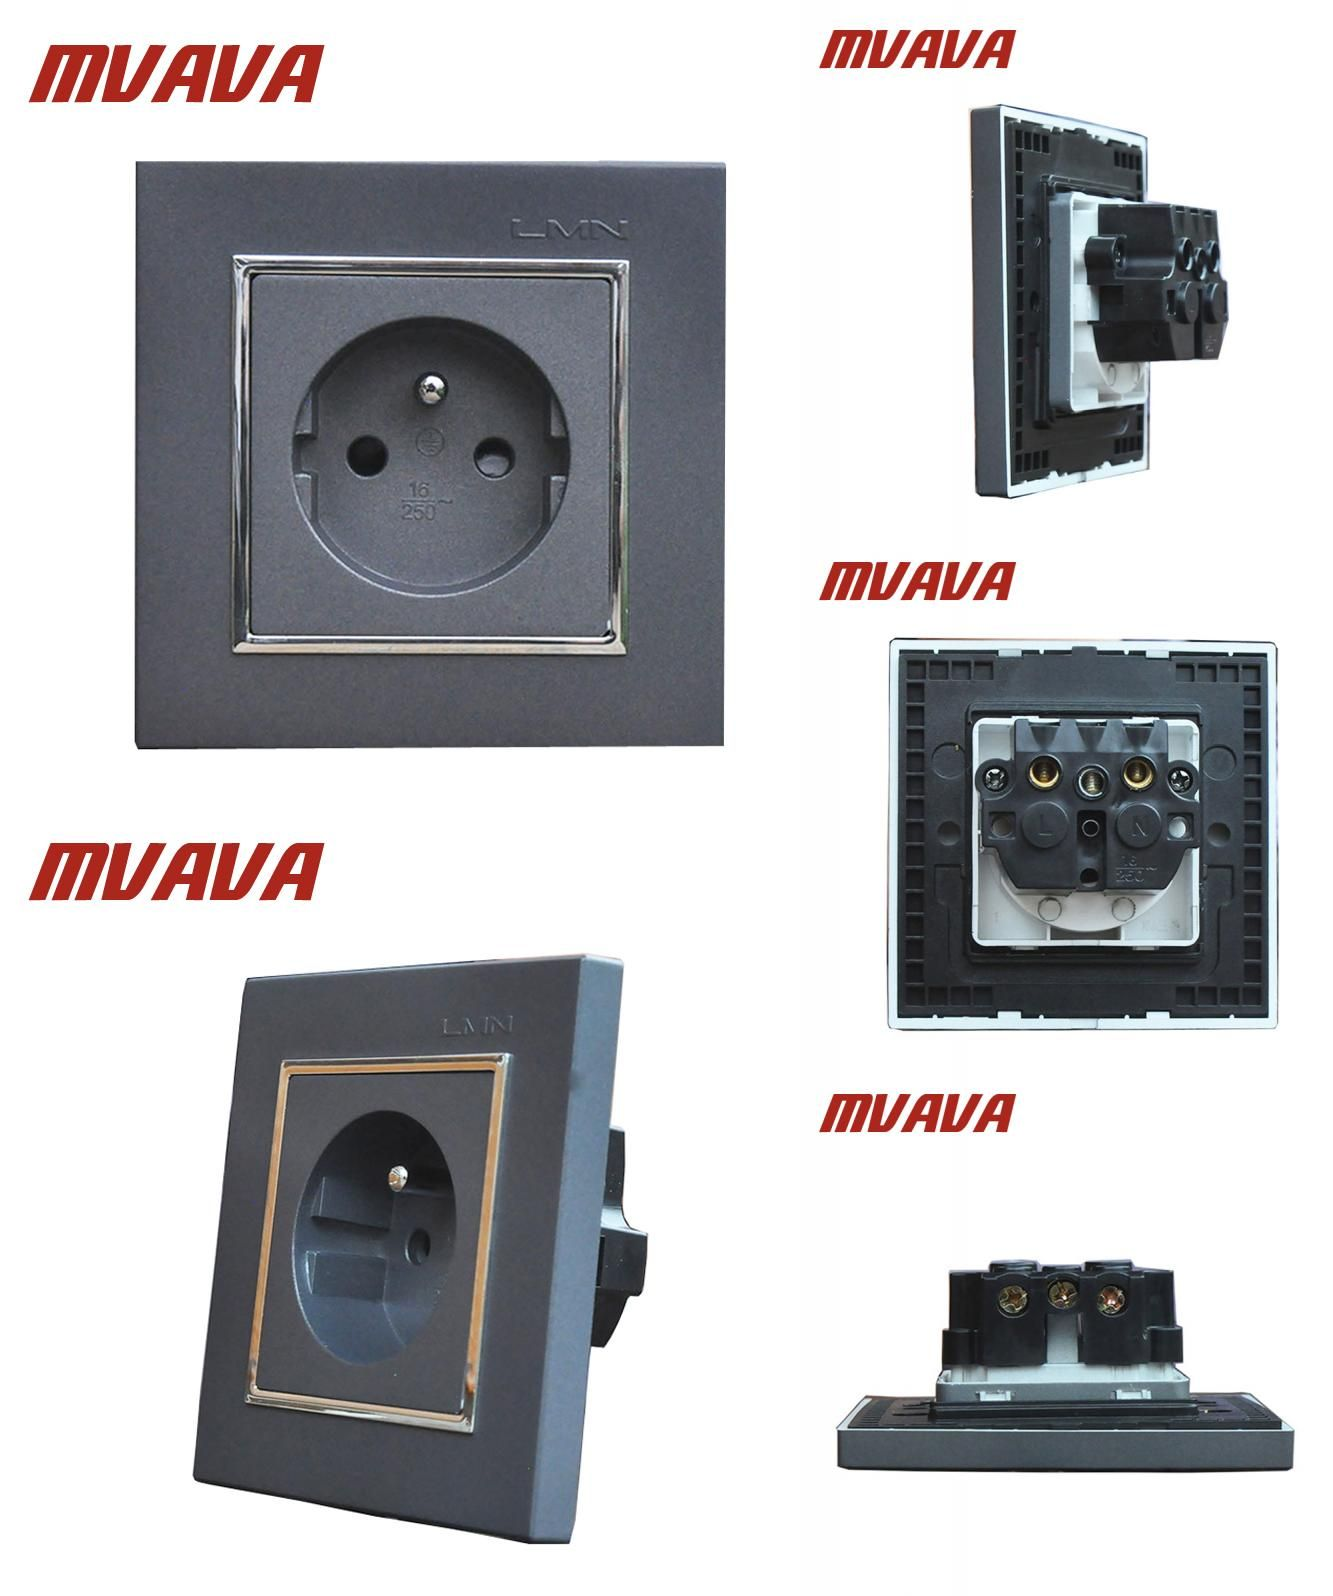 Visit to Buy] MVAVA French Standard Wall Power Socket Electrical ...